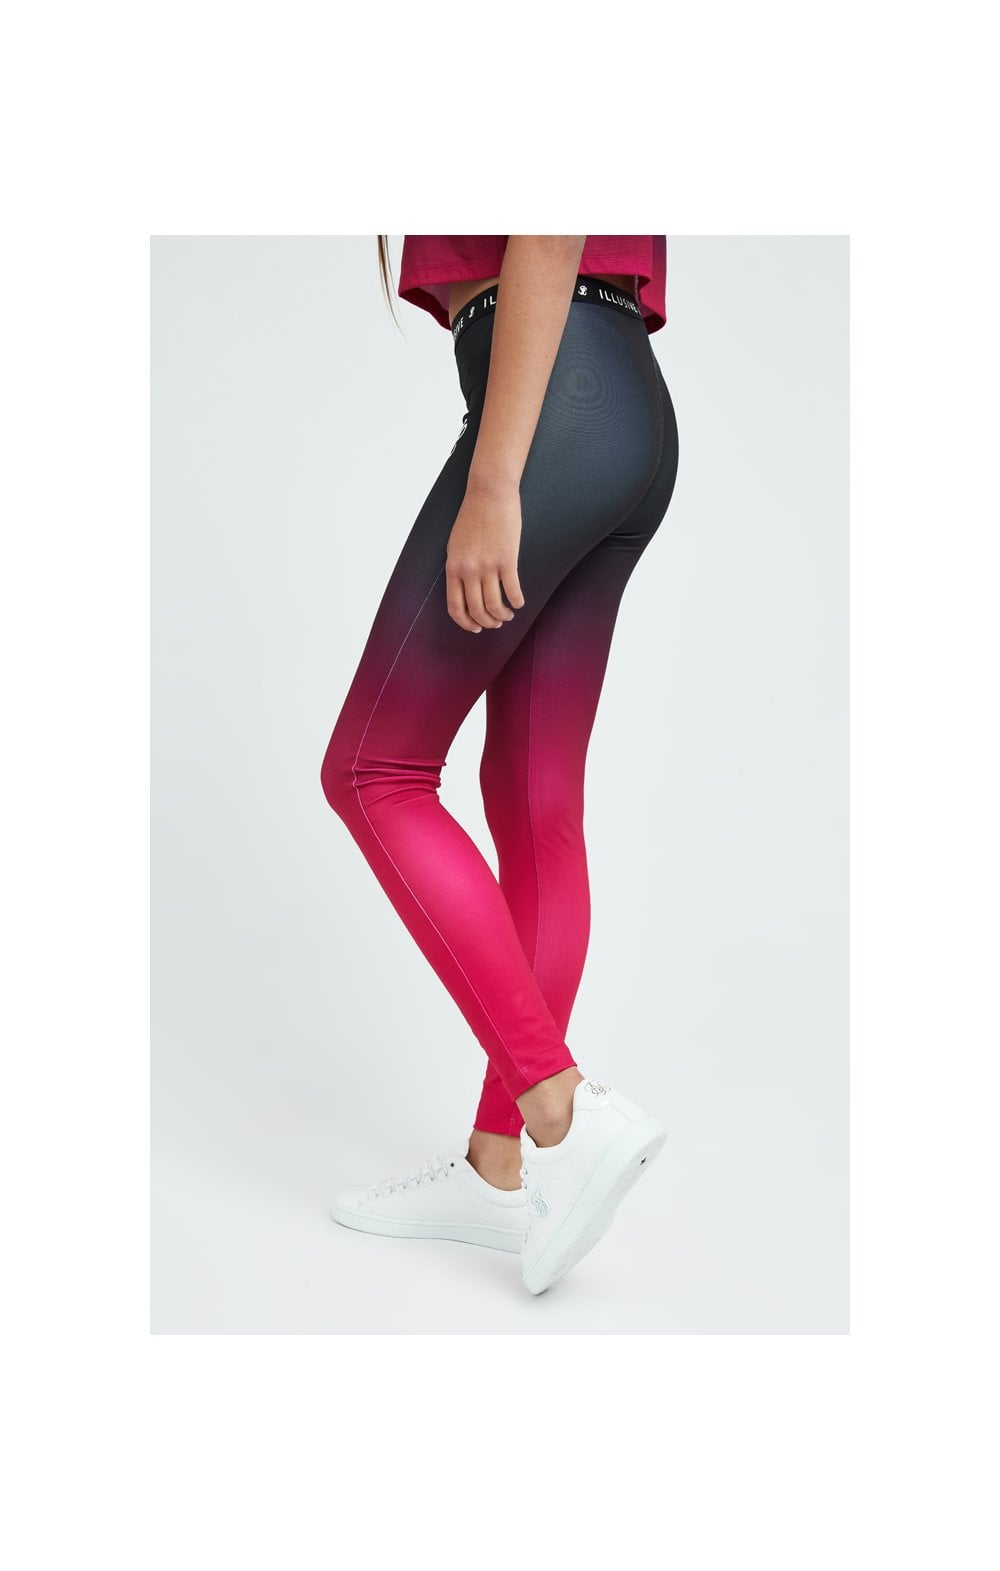 Load image into Gallery viewer, Illusive London Fade Leggings - Pink & Black (1)